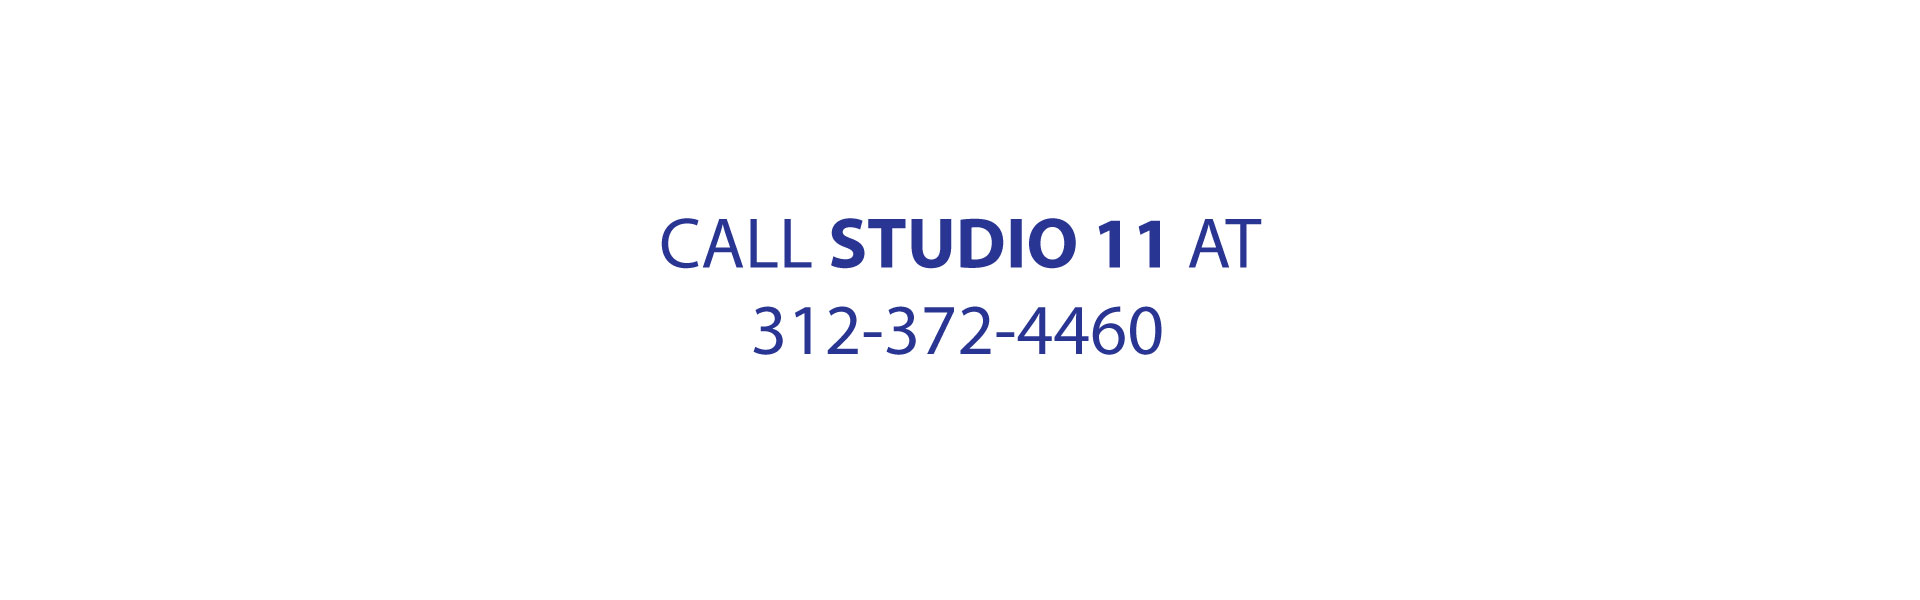 http://recording.studio11chicago.com/wp-content/uploads/2016/11/CALL-BANNER-3.jpg